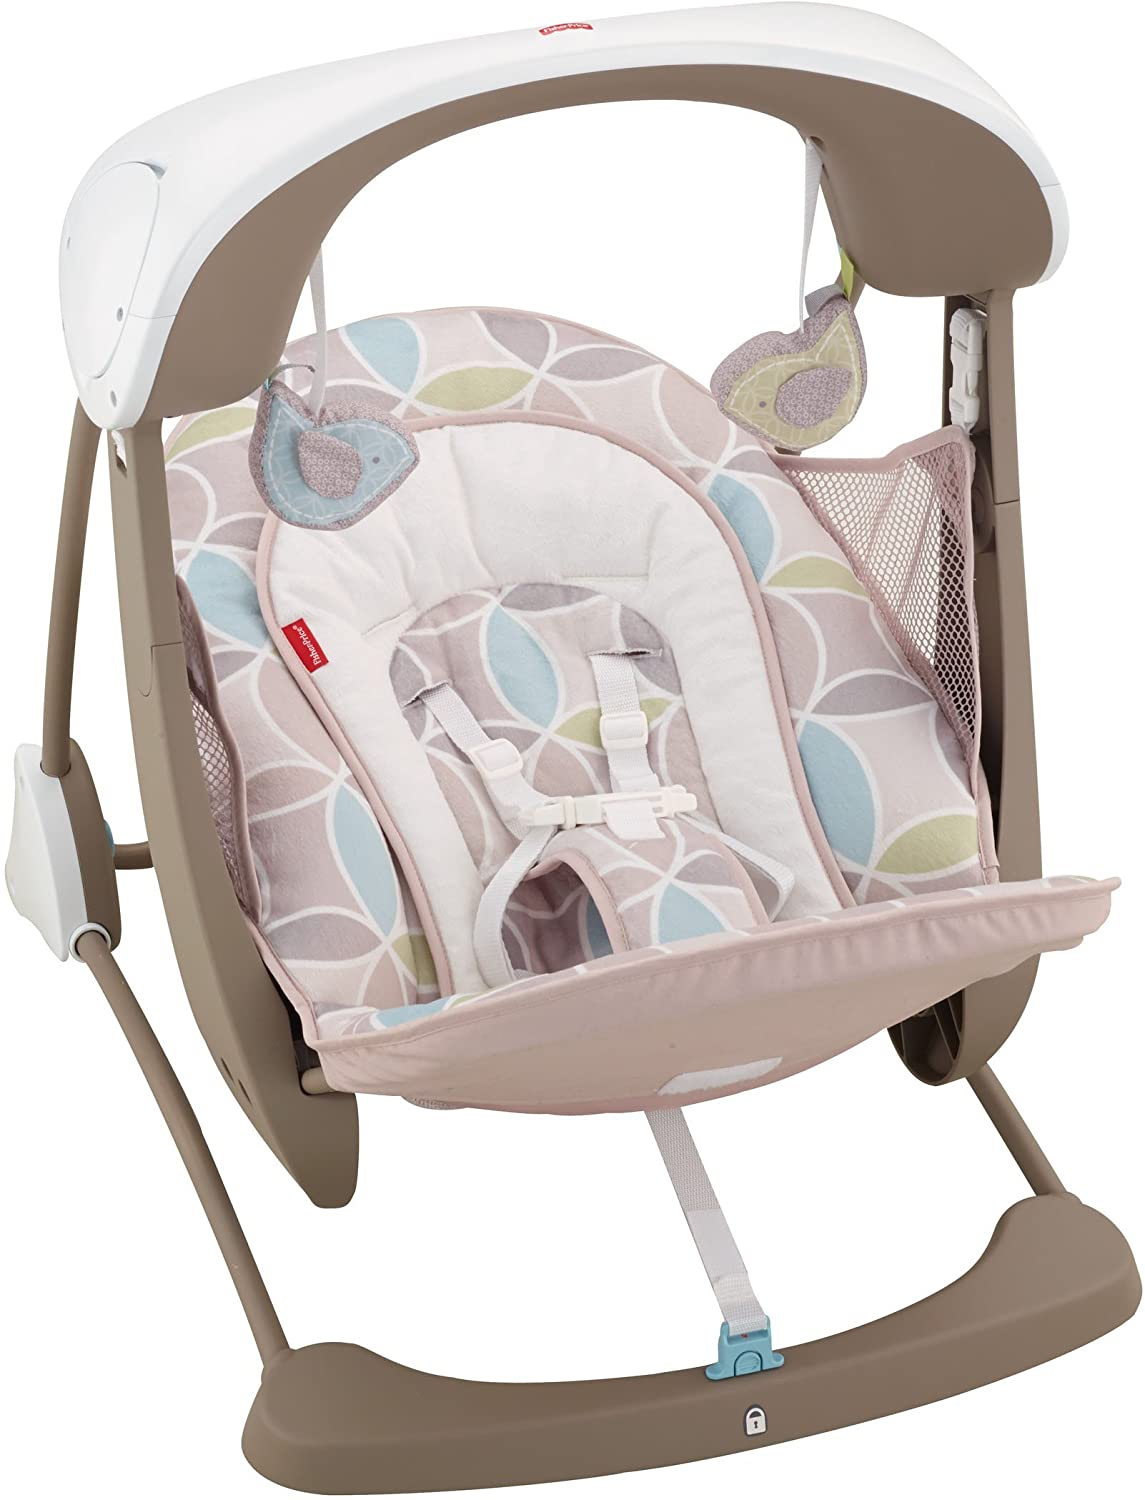 Fisher-Price Deluxe Take Along Swing and Seat Amazonca/FISNE CJV03